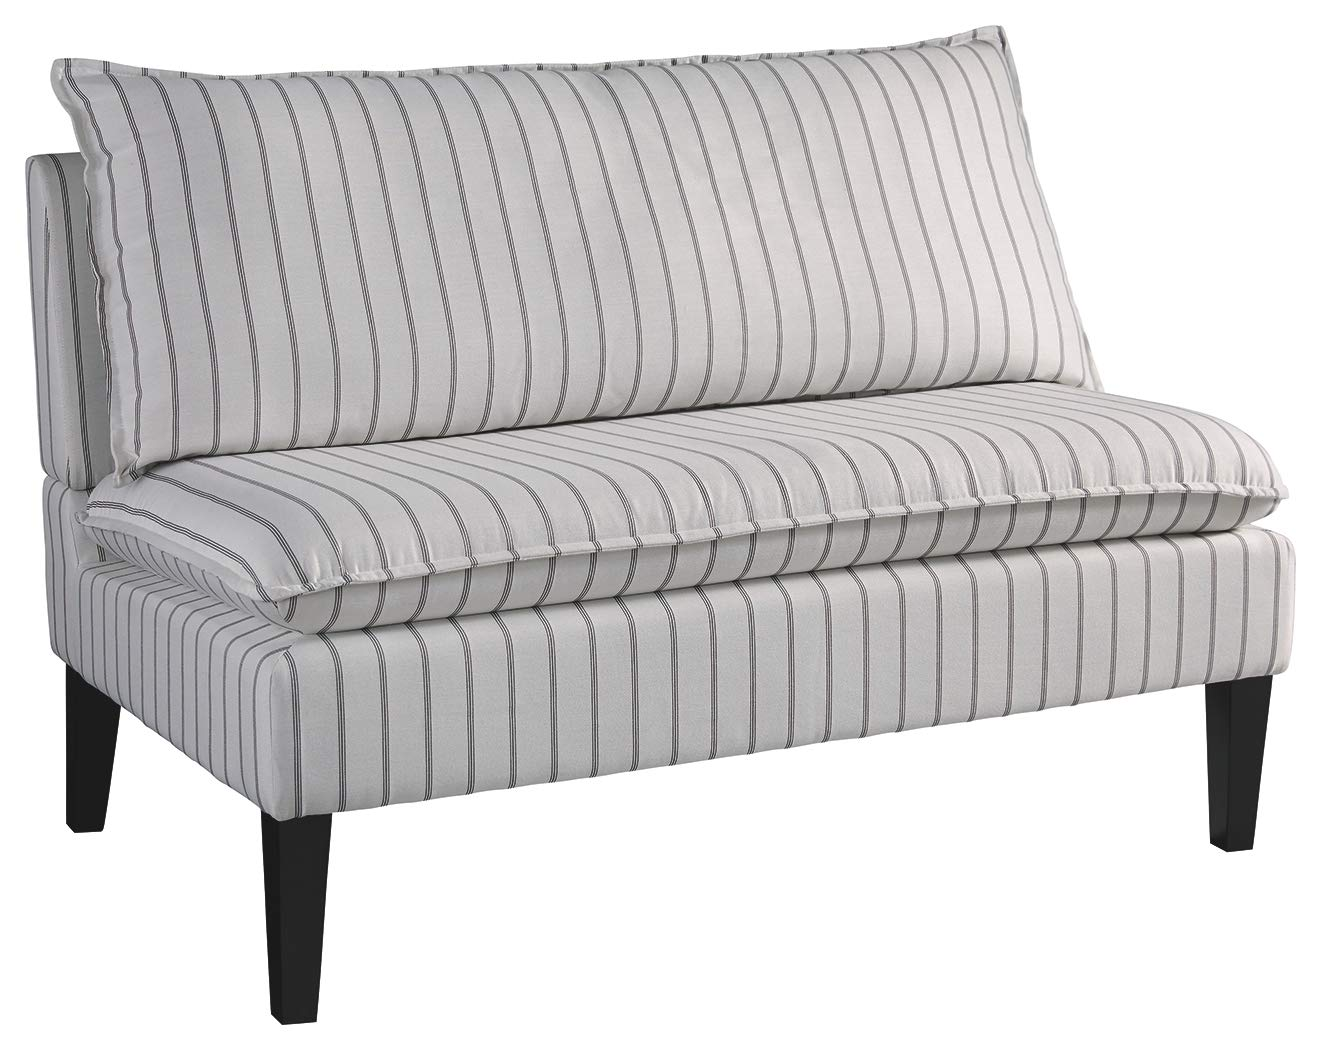 French country grey stripe bench.